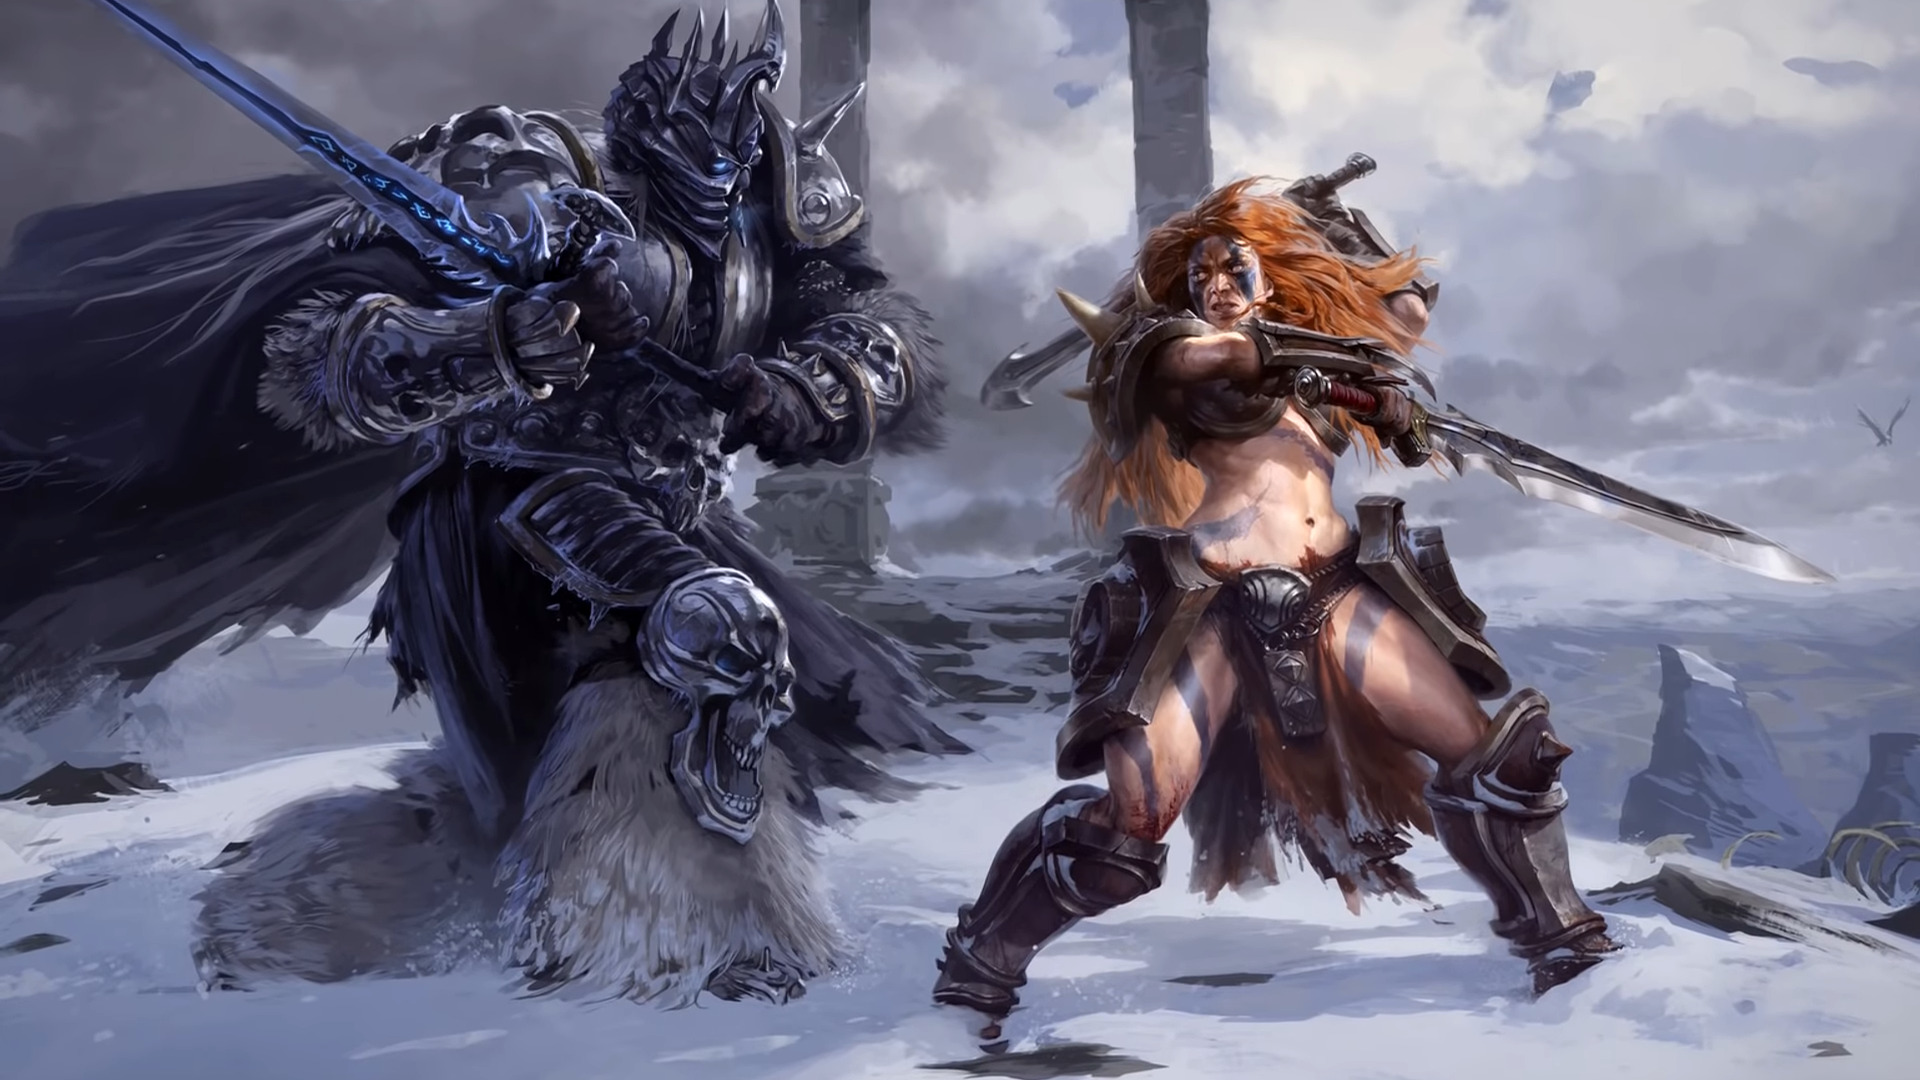 A Barbarian's Guide To 5e: A Few Simple Things Every Barbarian Should Know In Dungeons And Dragons